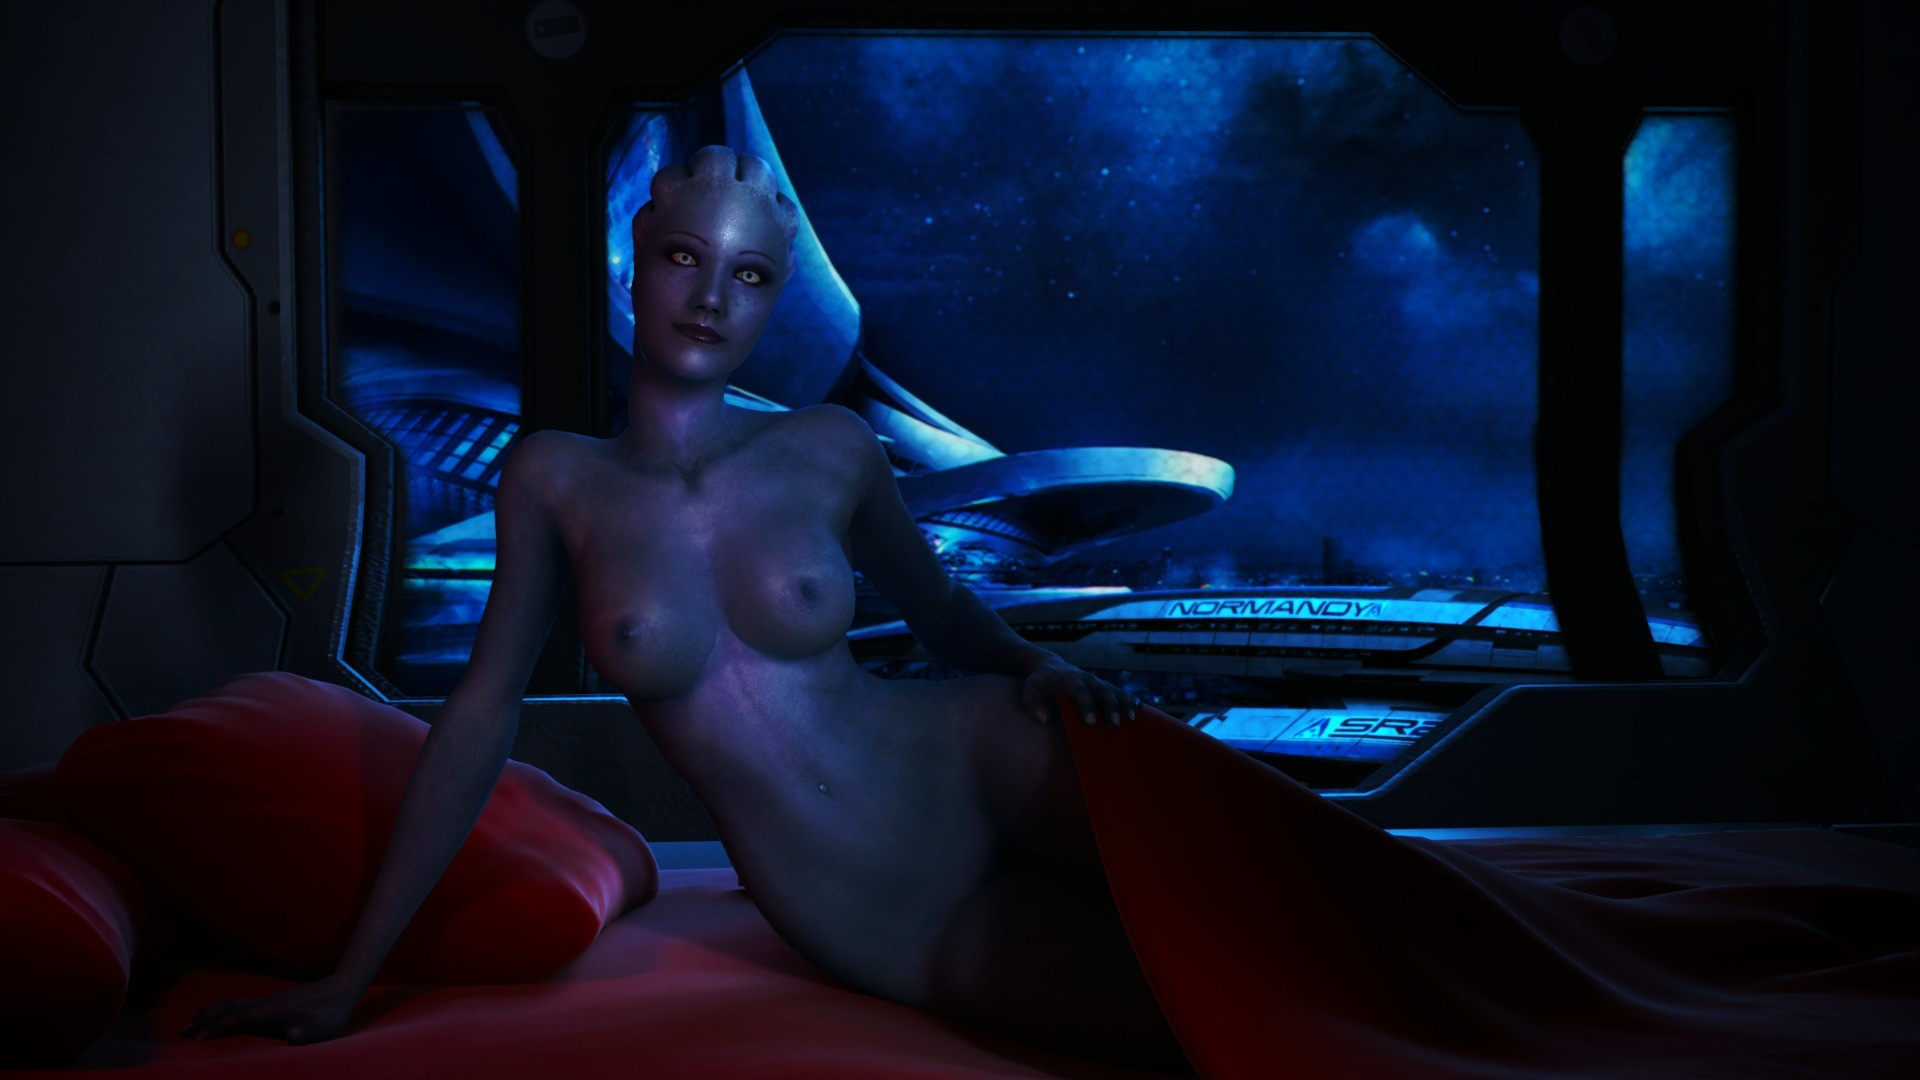 eroticheskiy-mass-effect